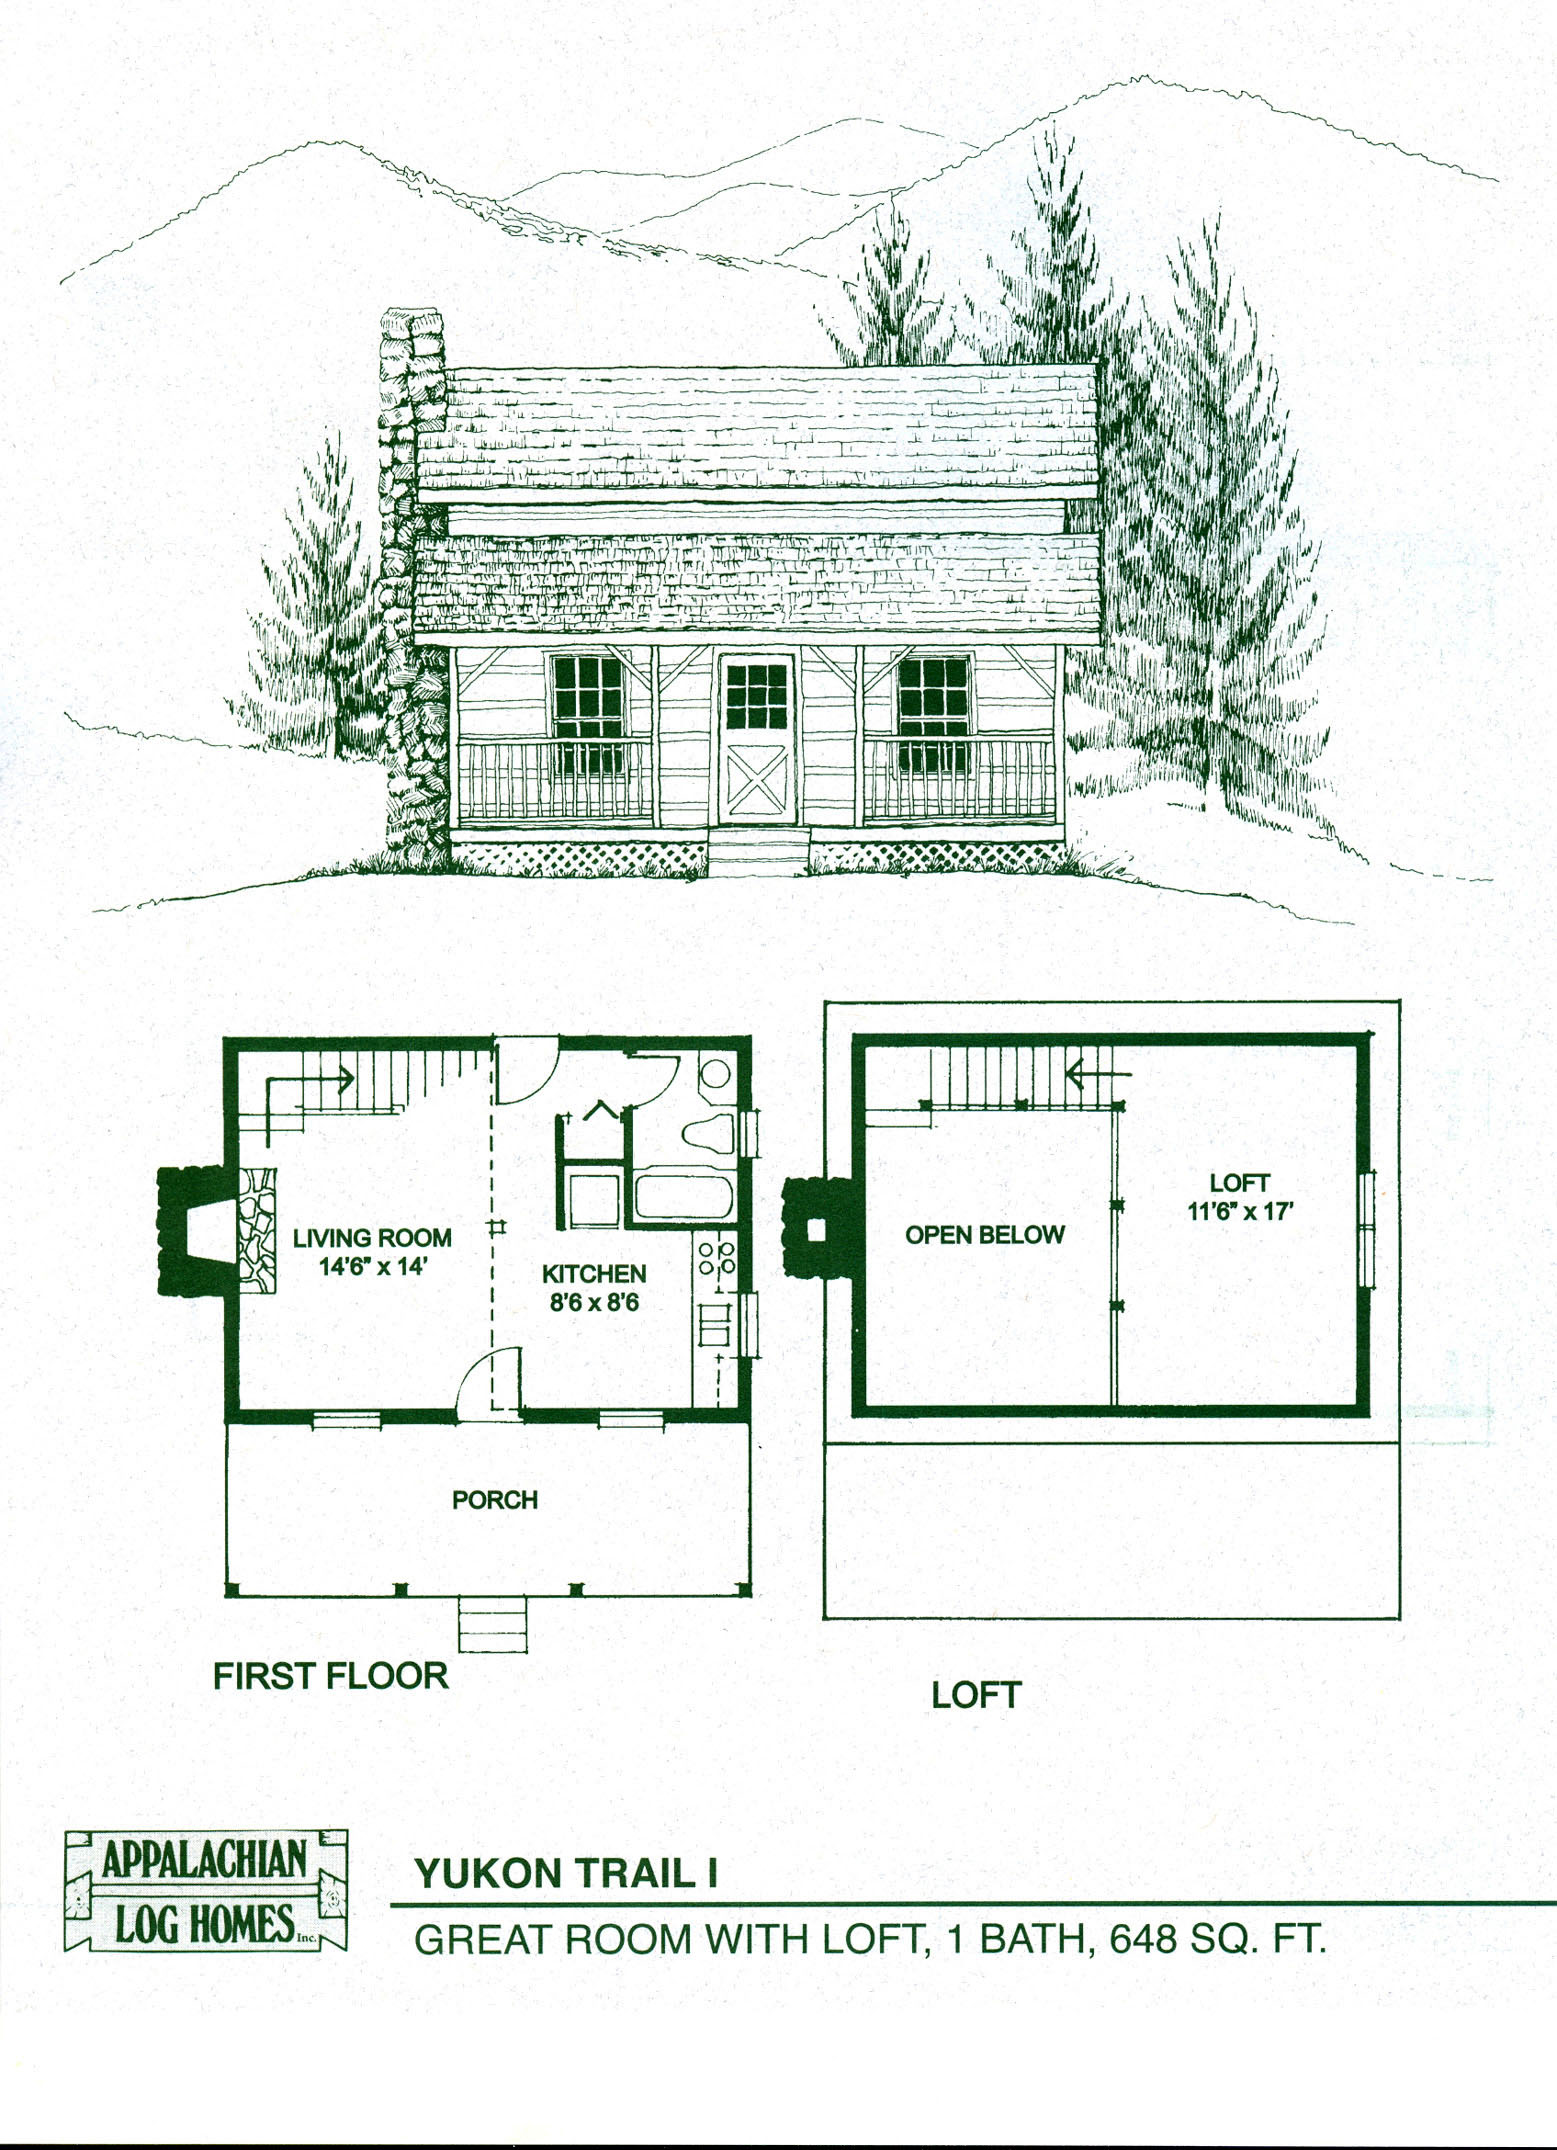 Small modular homes floor plans small cabin floor plans for Small modular home designs